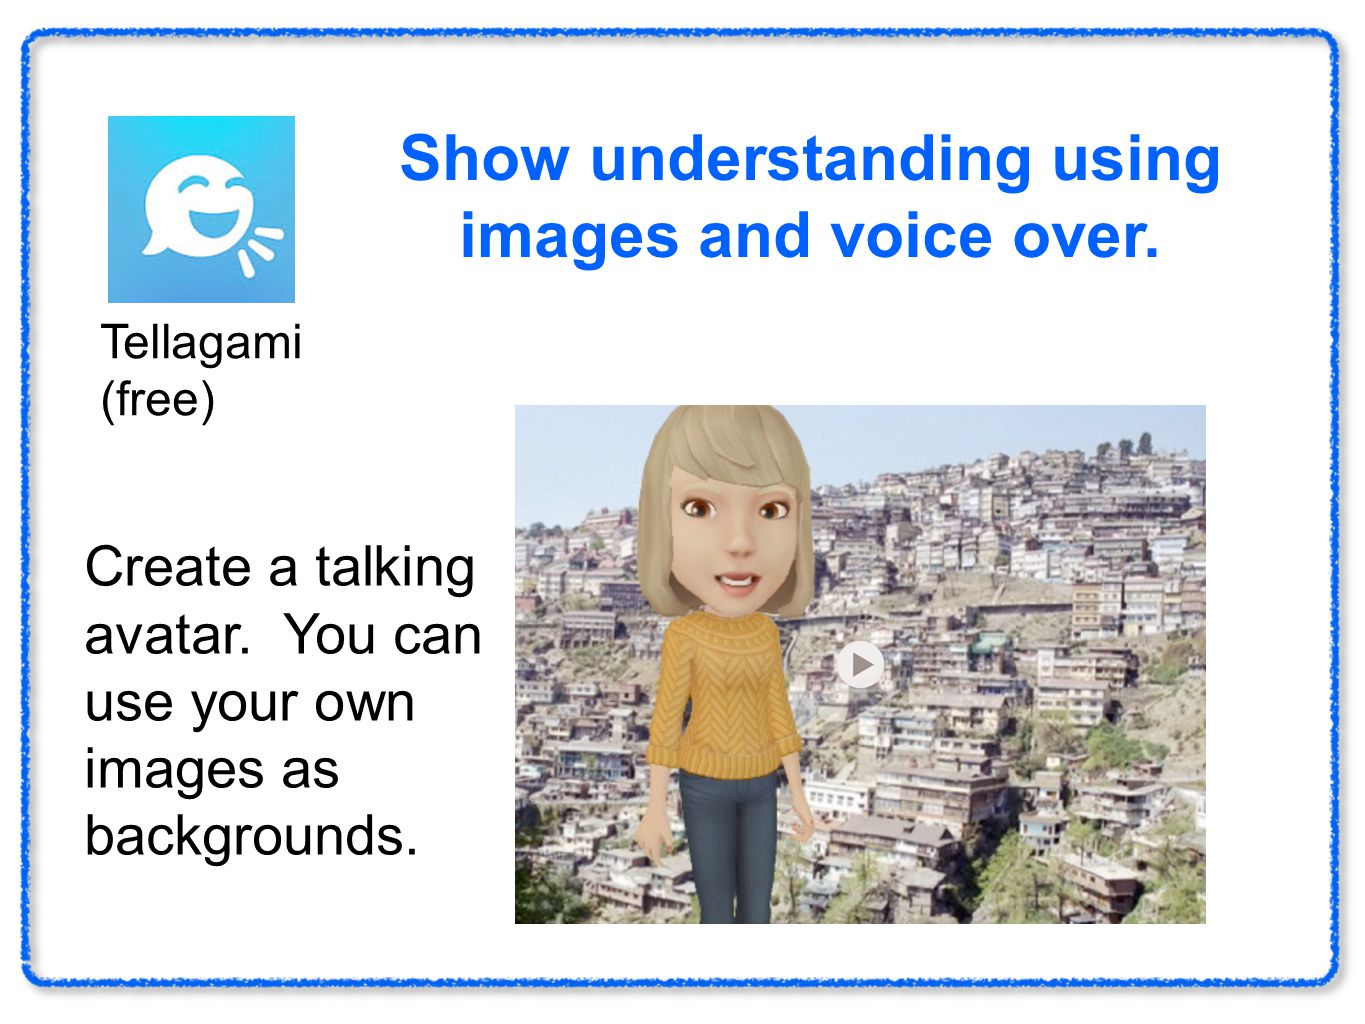 Haiku Deck (free) Show understanding using images and voice over. Tellagami (free) Create a talking avatar. You can use your own images as backgrounds